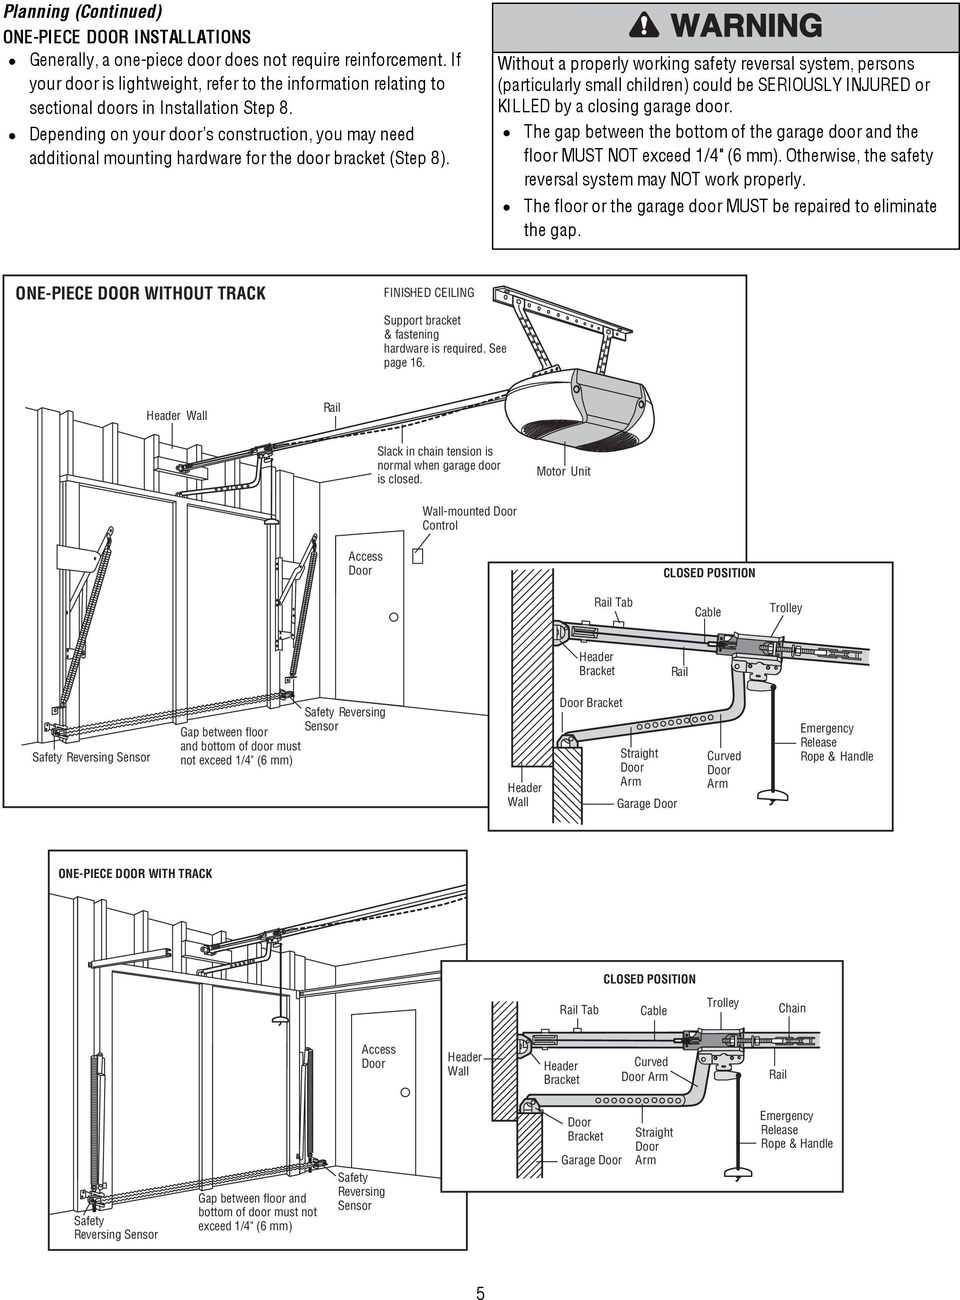 Depending on your door s construction, you may need additional mounting hardware for the door bracket (Step 8).